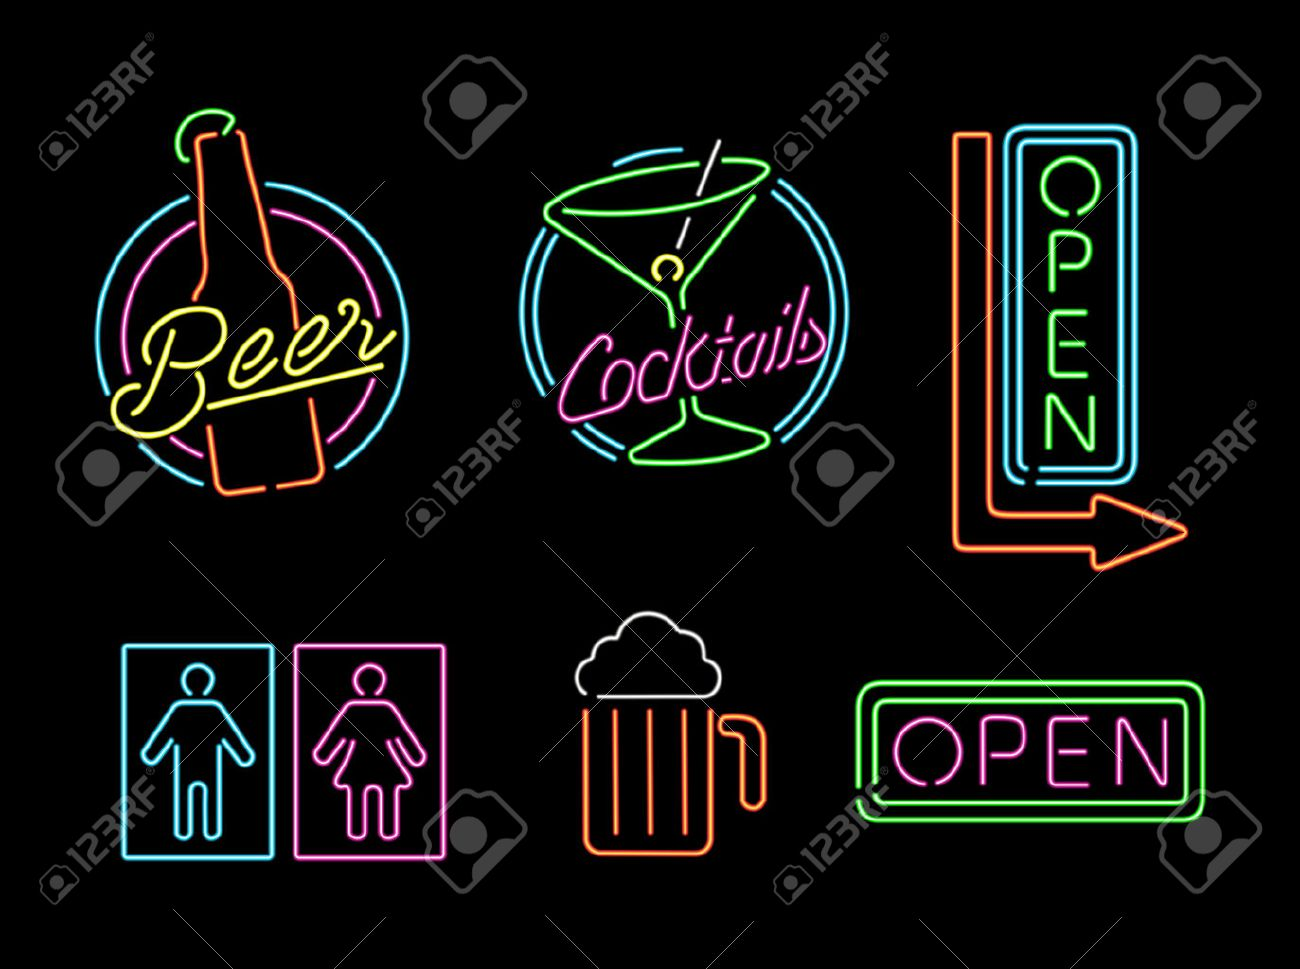 Bathroom Sign Vector Style set of retro style neon light outline sign icons for bar, beer